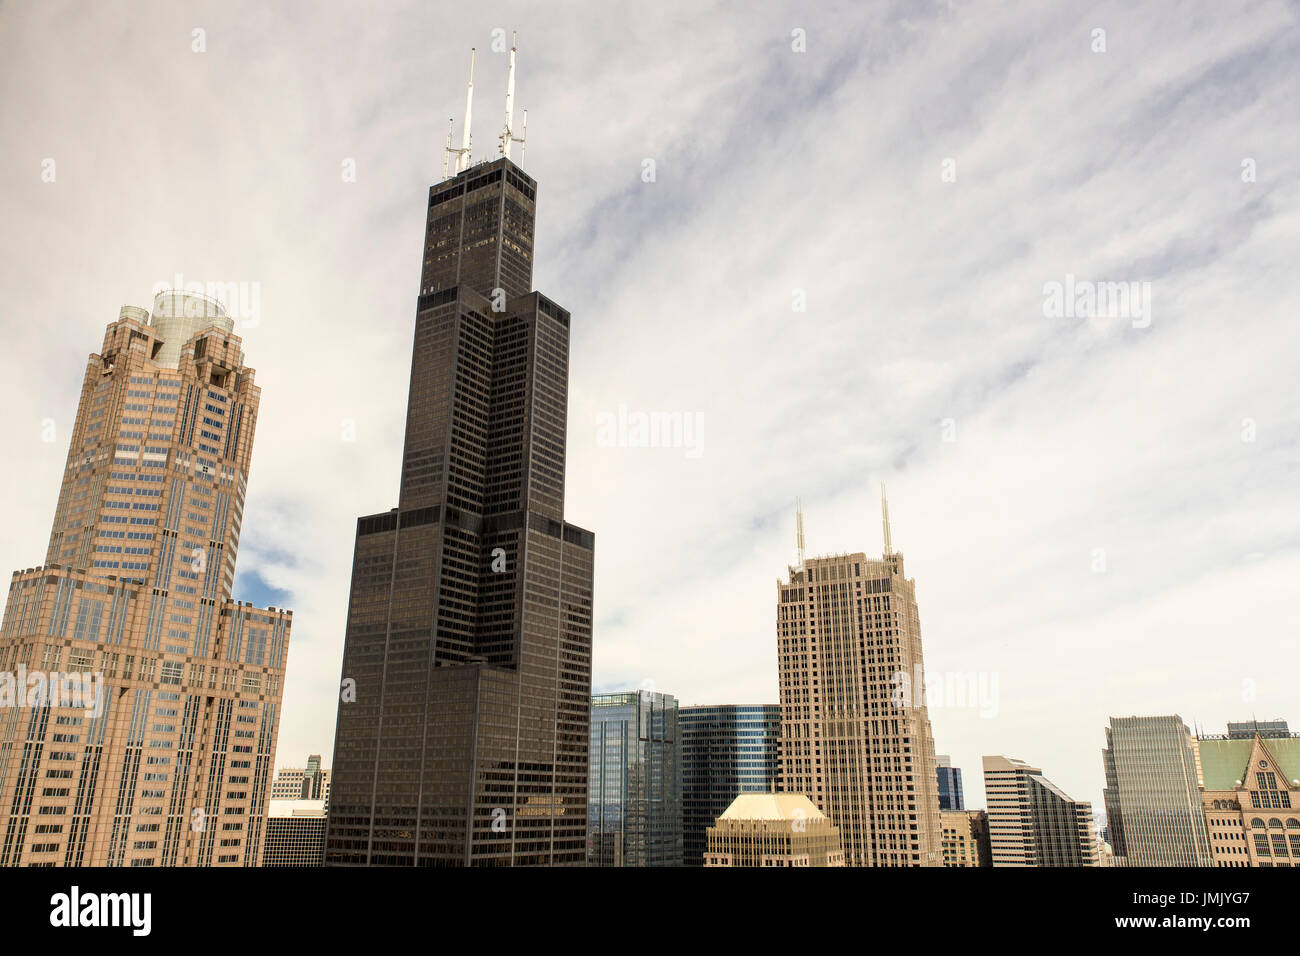 The Chicago skyline featuring the Sears Tower (ne Willis Tower) - Stock Image